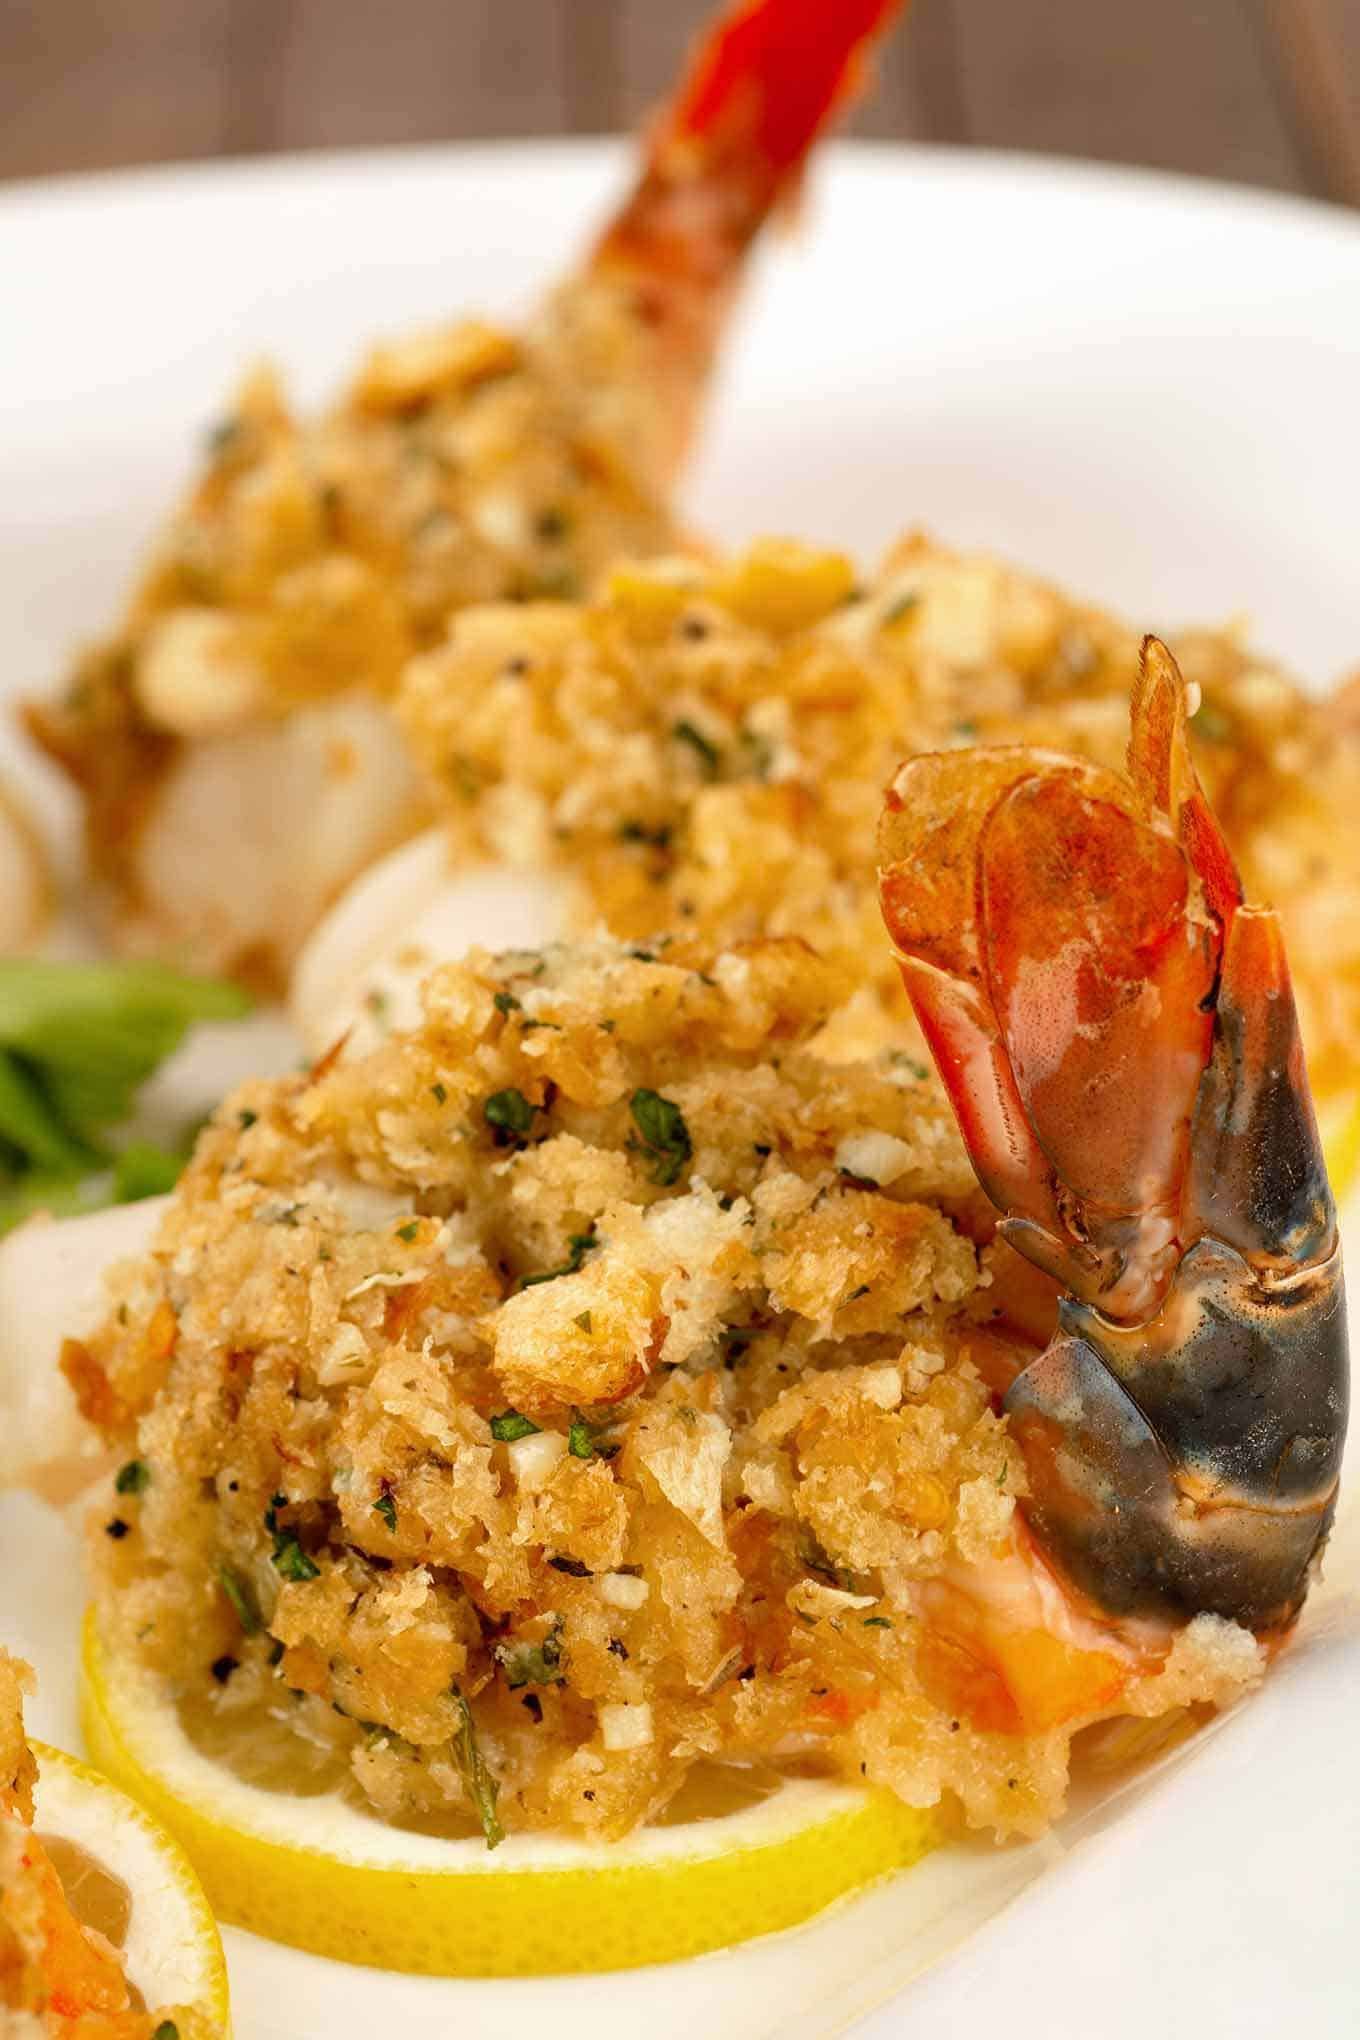 Colossal shrimp topped with a breadcrumb stuffing